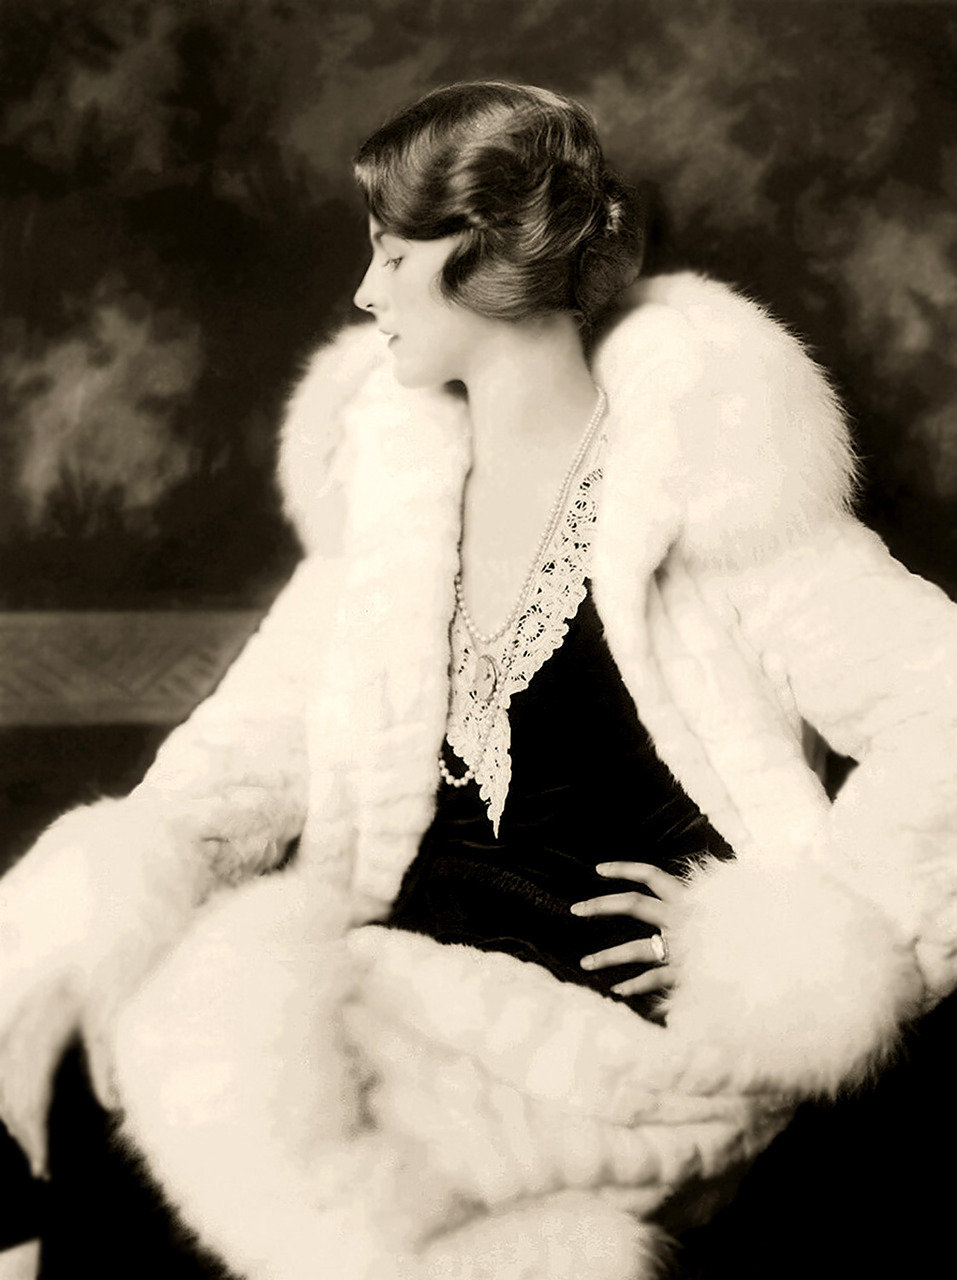 Dorothy Knapp - 1920s - Ziegfeld by Alfred Cheney Johnston. Restored by Nick and jane for Dr. Macro's High Quality Movie Scans website: http://www.doctormacro.com/index.html. Enjoy!